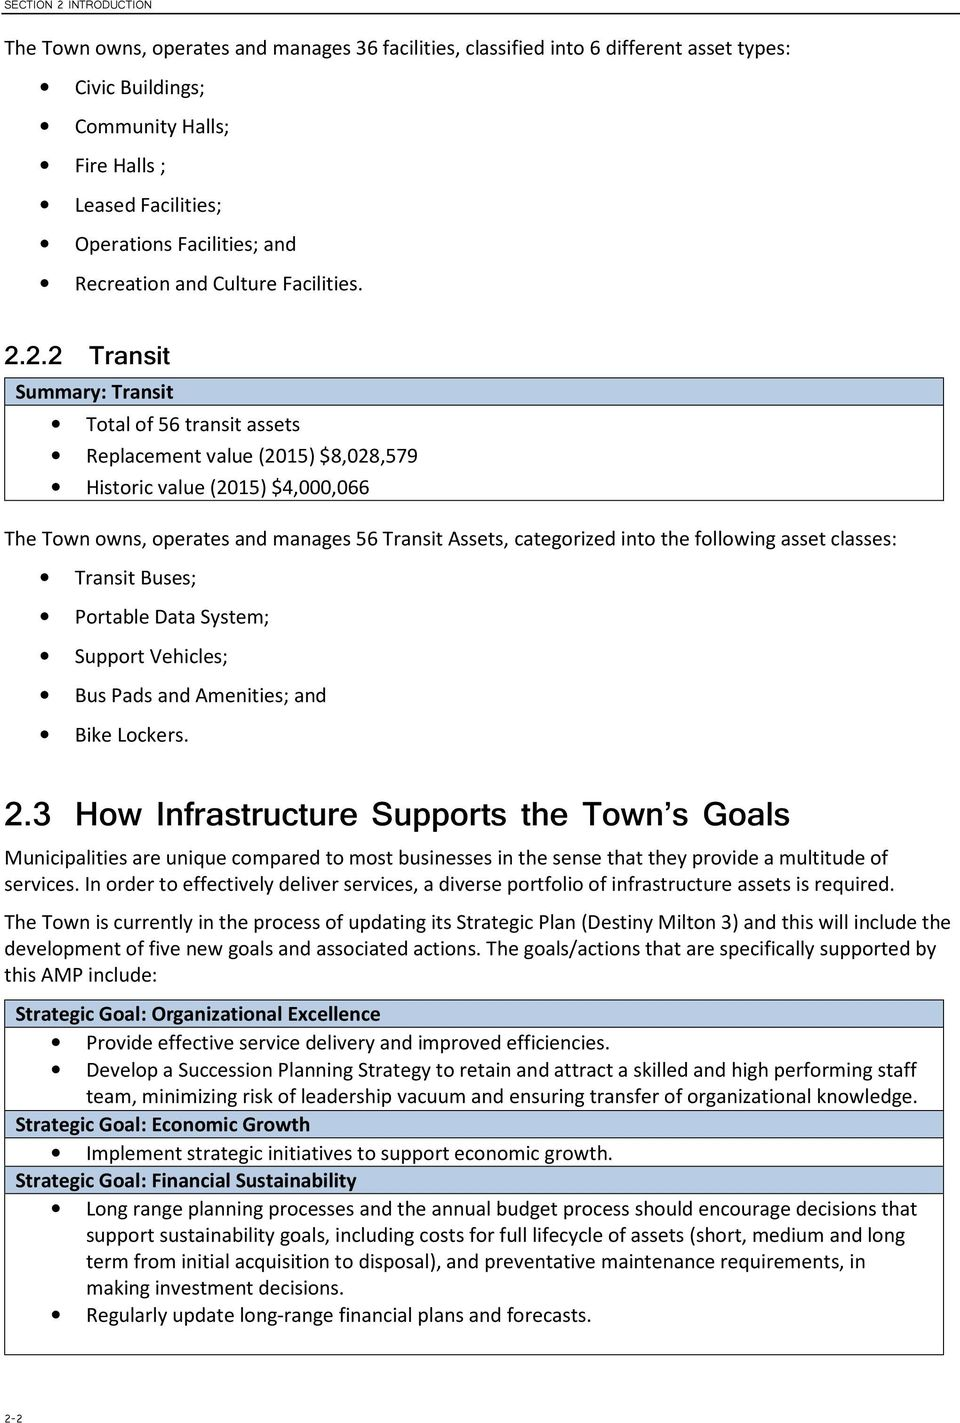 .. Transit Summary: Transit Total of 56 transit assets Replacement value (2015) $8,028,579 Historic value (2015) $4,000,066 The Town owns, operates and manages 56 Transit Assets, categorized into the